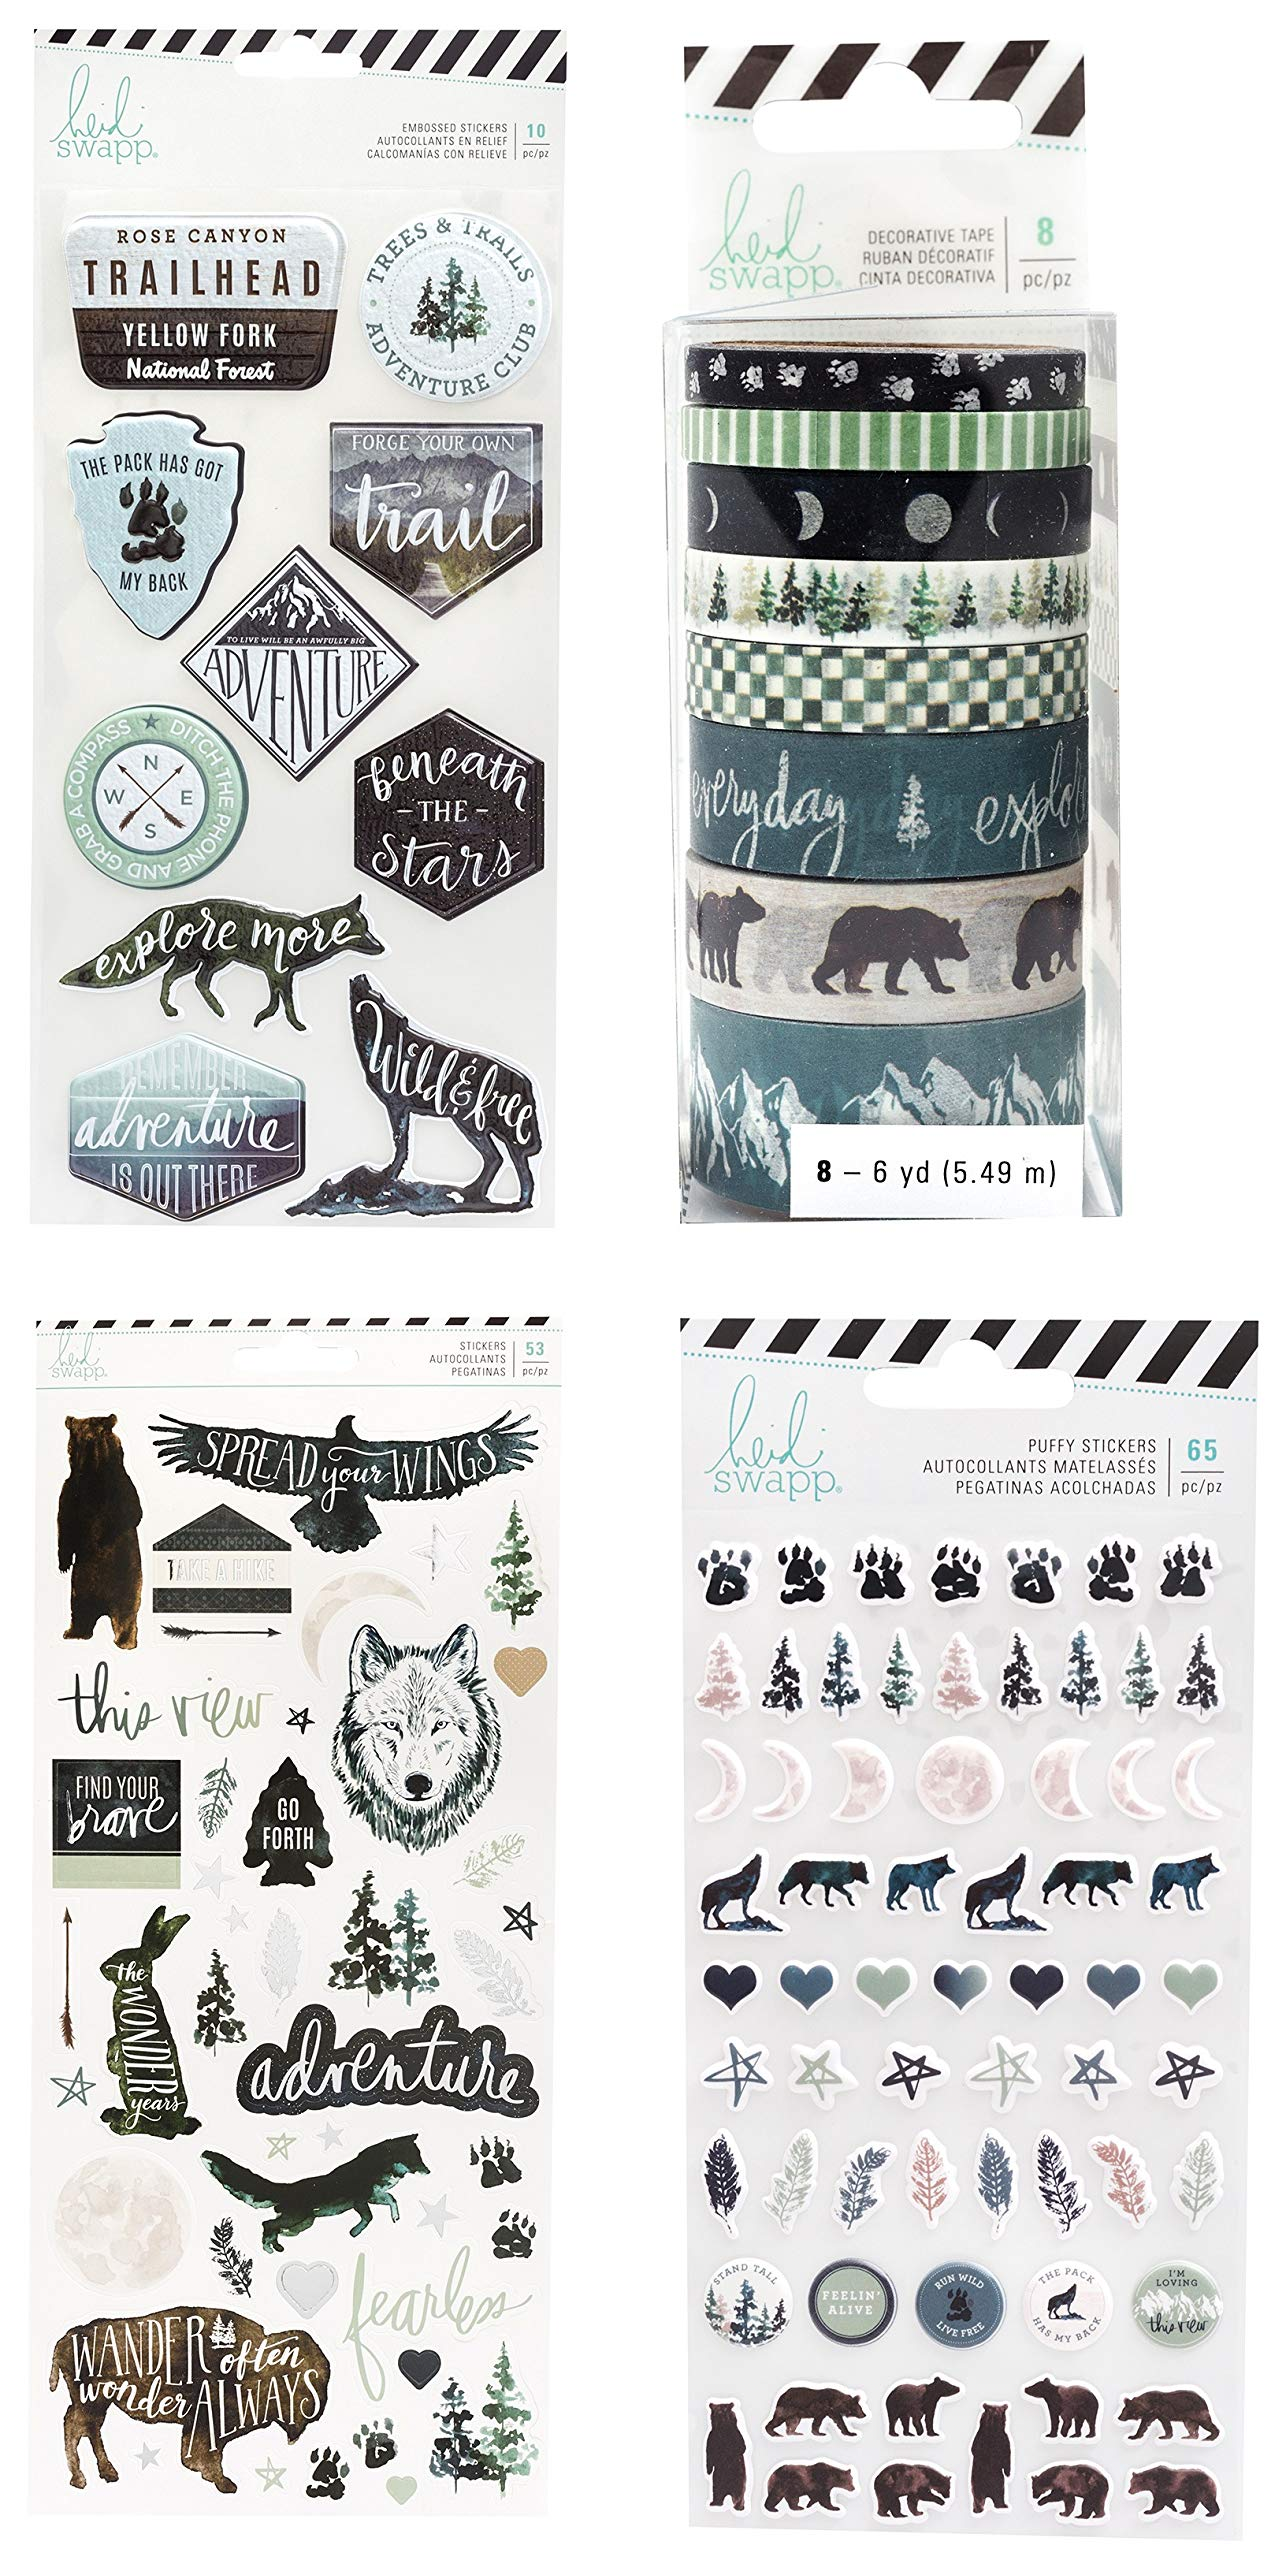 Wolf, Bear, Forest Scrapbook Stickers and Washi Tape Assortment | Sticker Set for Adventure, Camping, Hiking Themed Scrapbooking, Planner, Bullet Journals, Album, Calendars, DIY Crafts by Generic